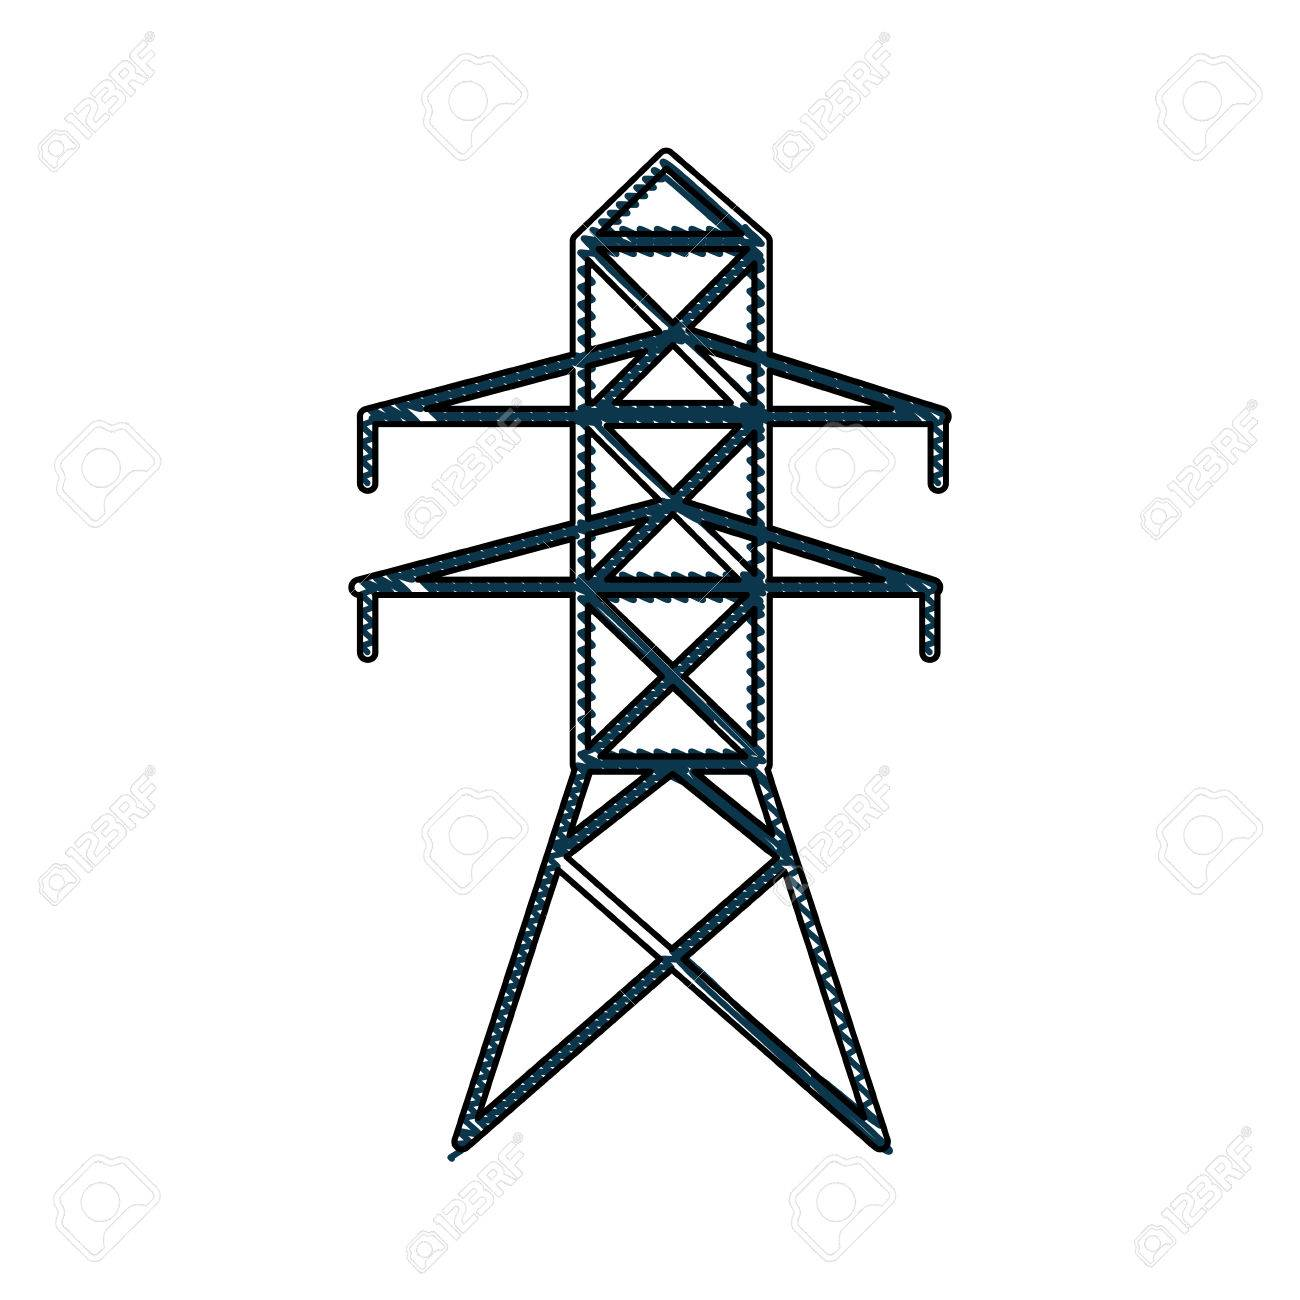 Electrical Tower Drawing Great Installation Of Wiring Diagram House Electricity Distribution Energy Light Vector Rh 123rf Com Power With Feed Mit Pdf Electronic